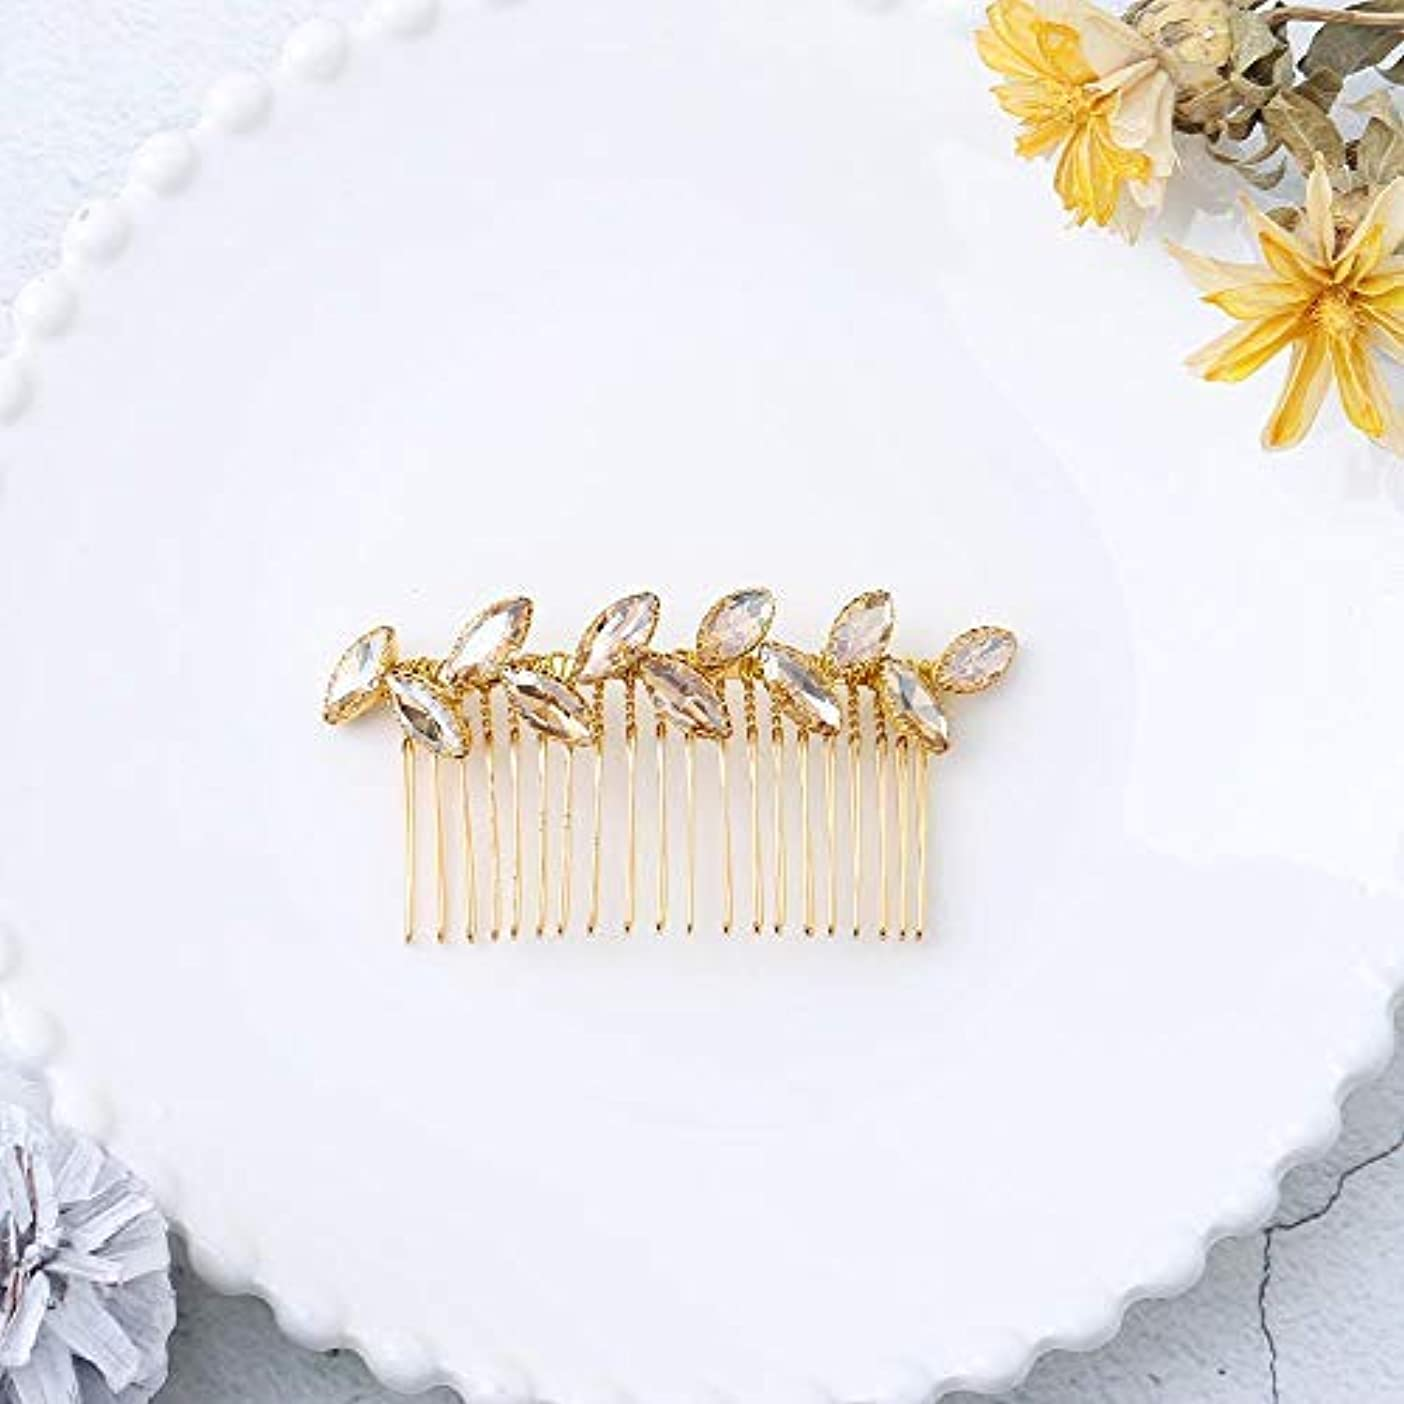 Jovono Bride Wedding Hair Comb Bridal Headpieces with Champagne Rhinestone for Women and Girls (Gold) [並行輸入品]